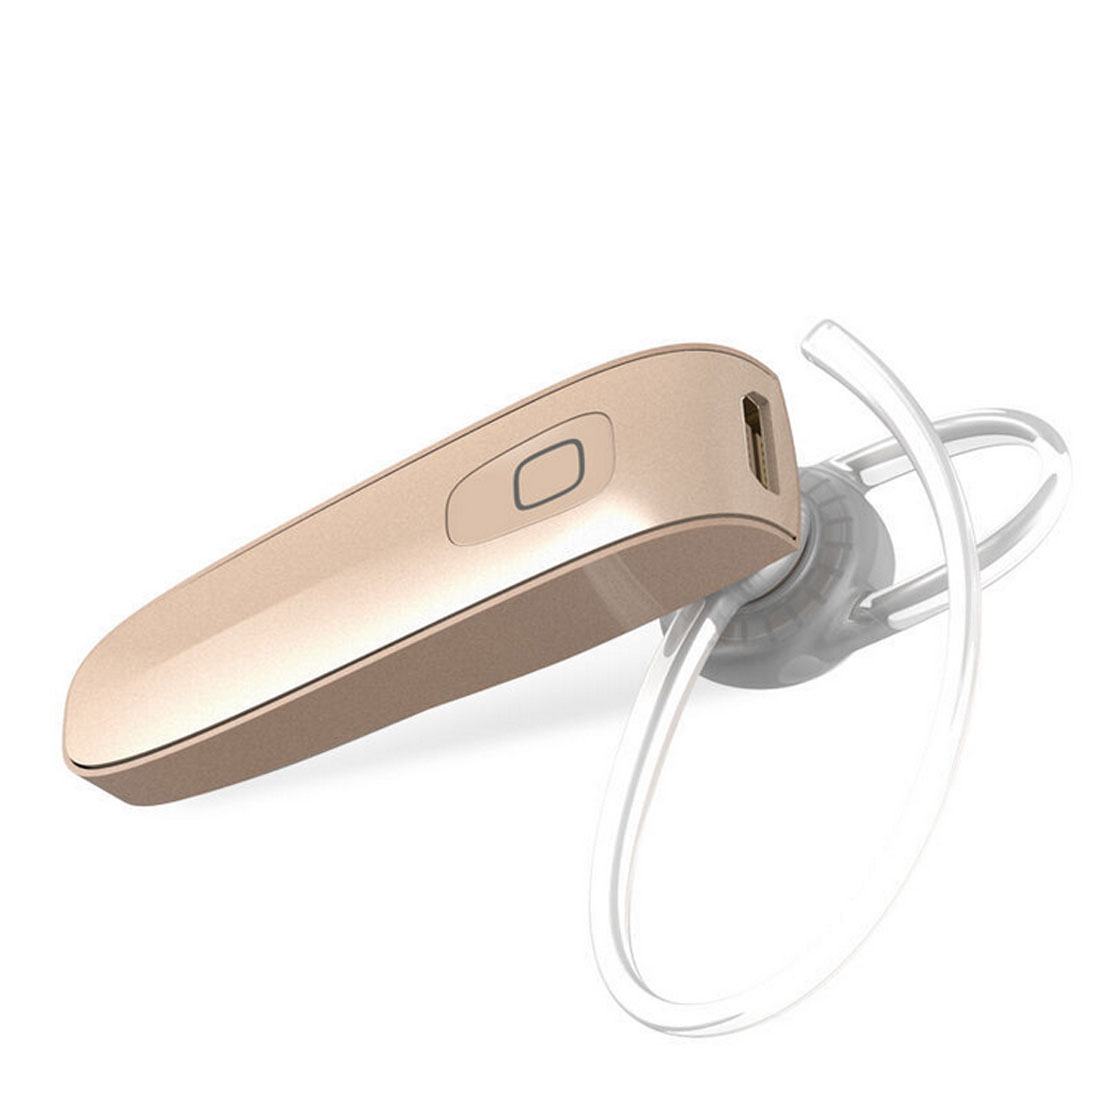 centechia B1 Stereo Mini Bluetooth Headset Wireless Earphone Hands Free Headphone with Mic for iPhone Samsung Note 7 LG HTC